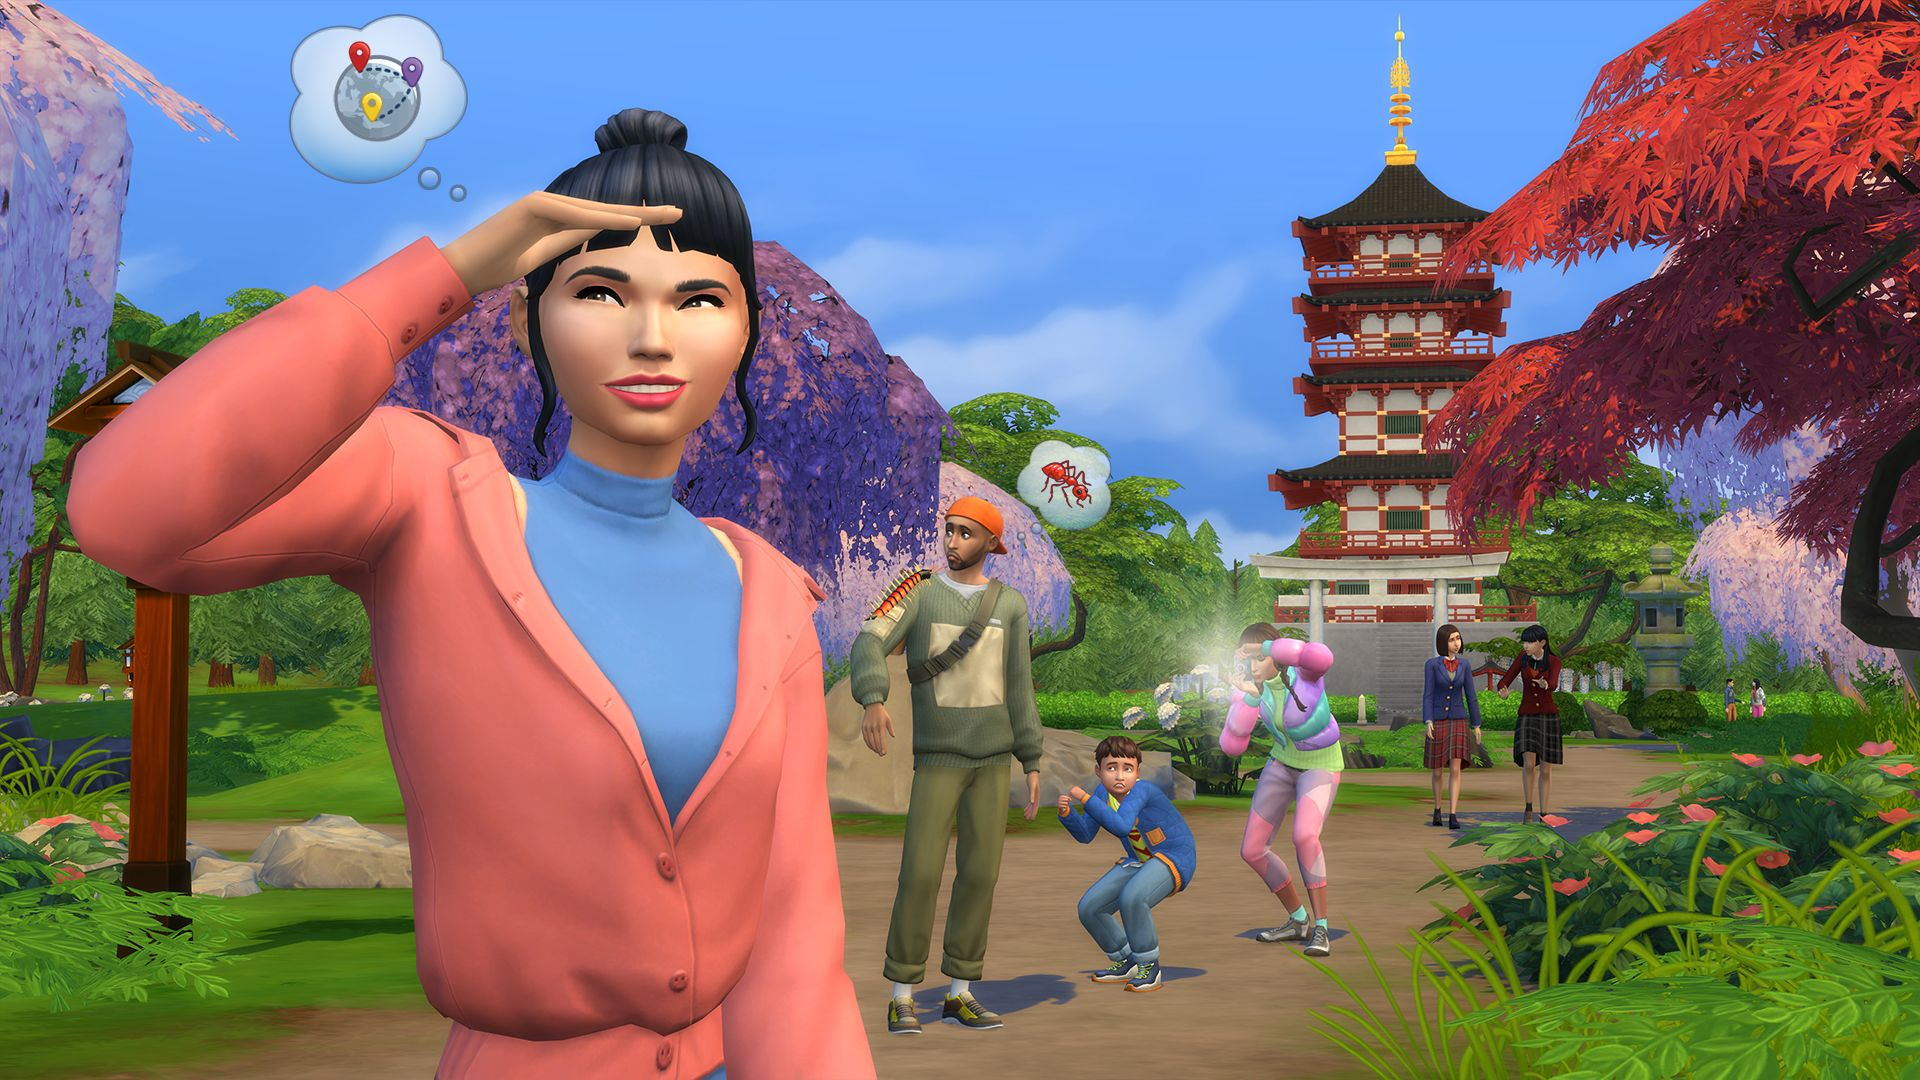 A screenshot of a group of Sims on a nice hike in Senbamachi. There is a tall temple tower building in the background. One of the Sims is thinking about ants.